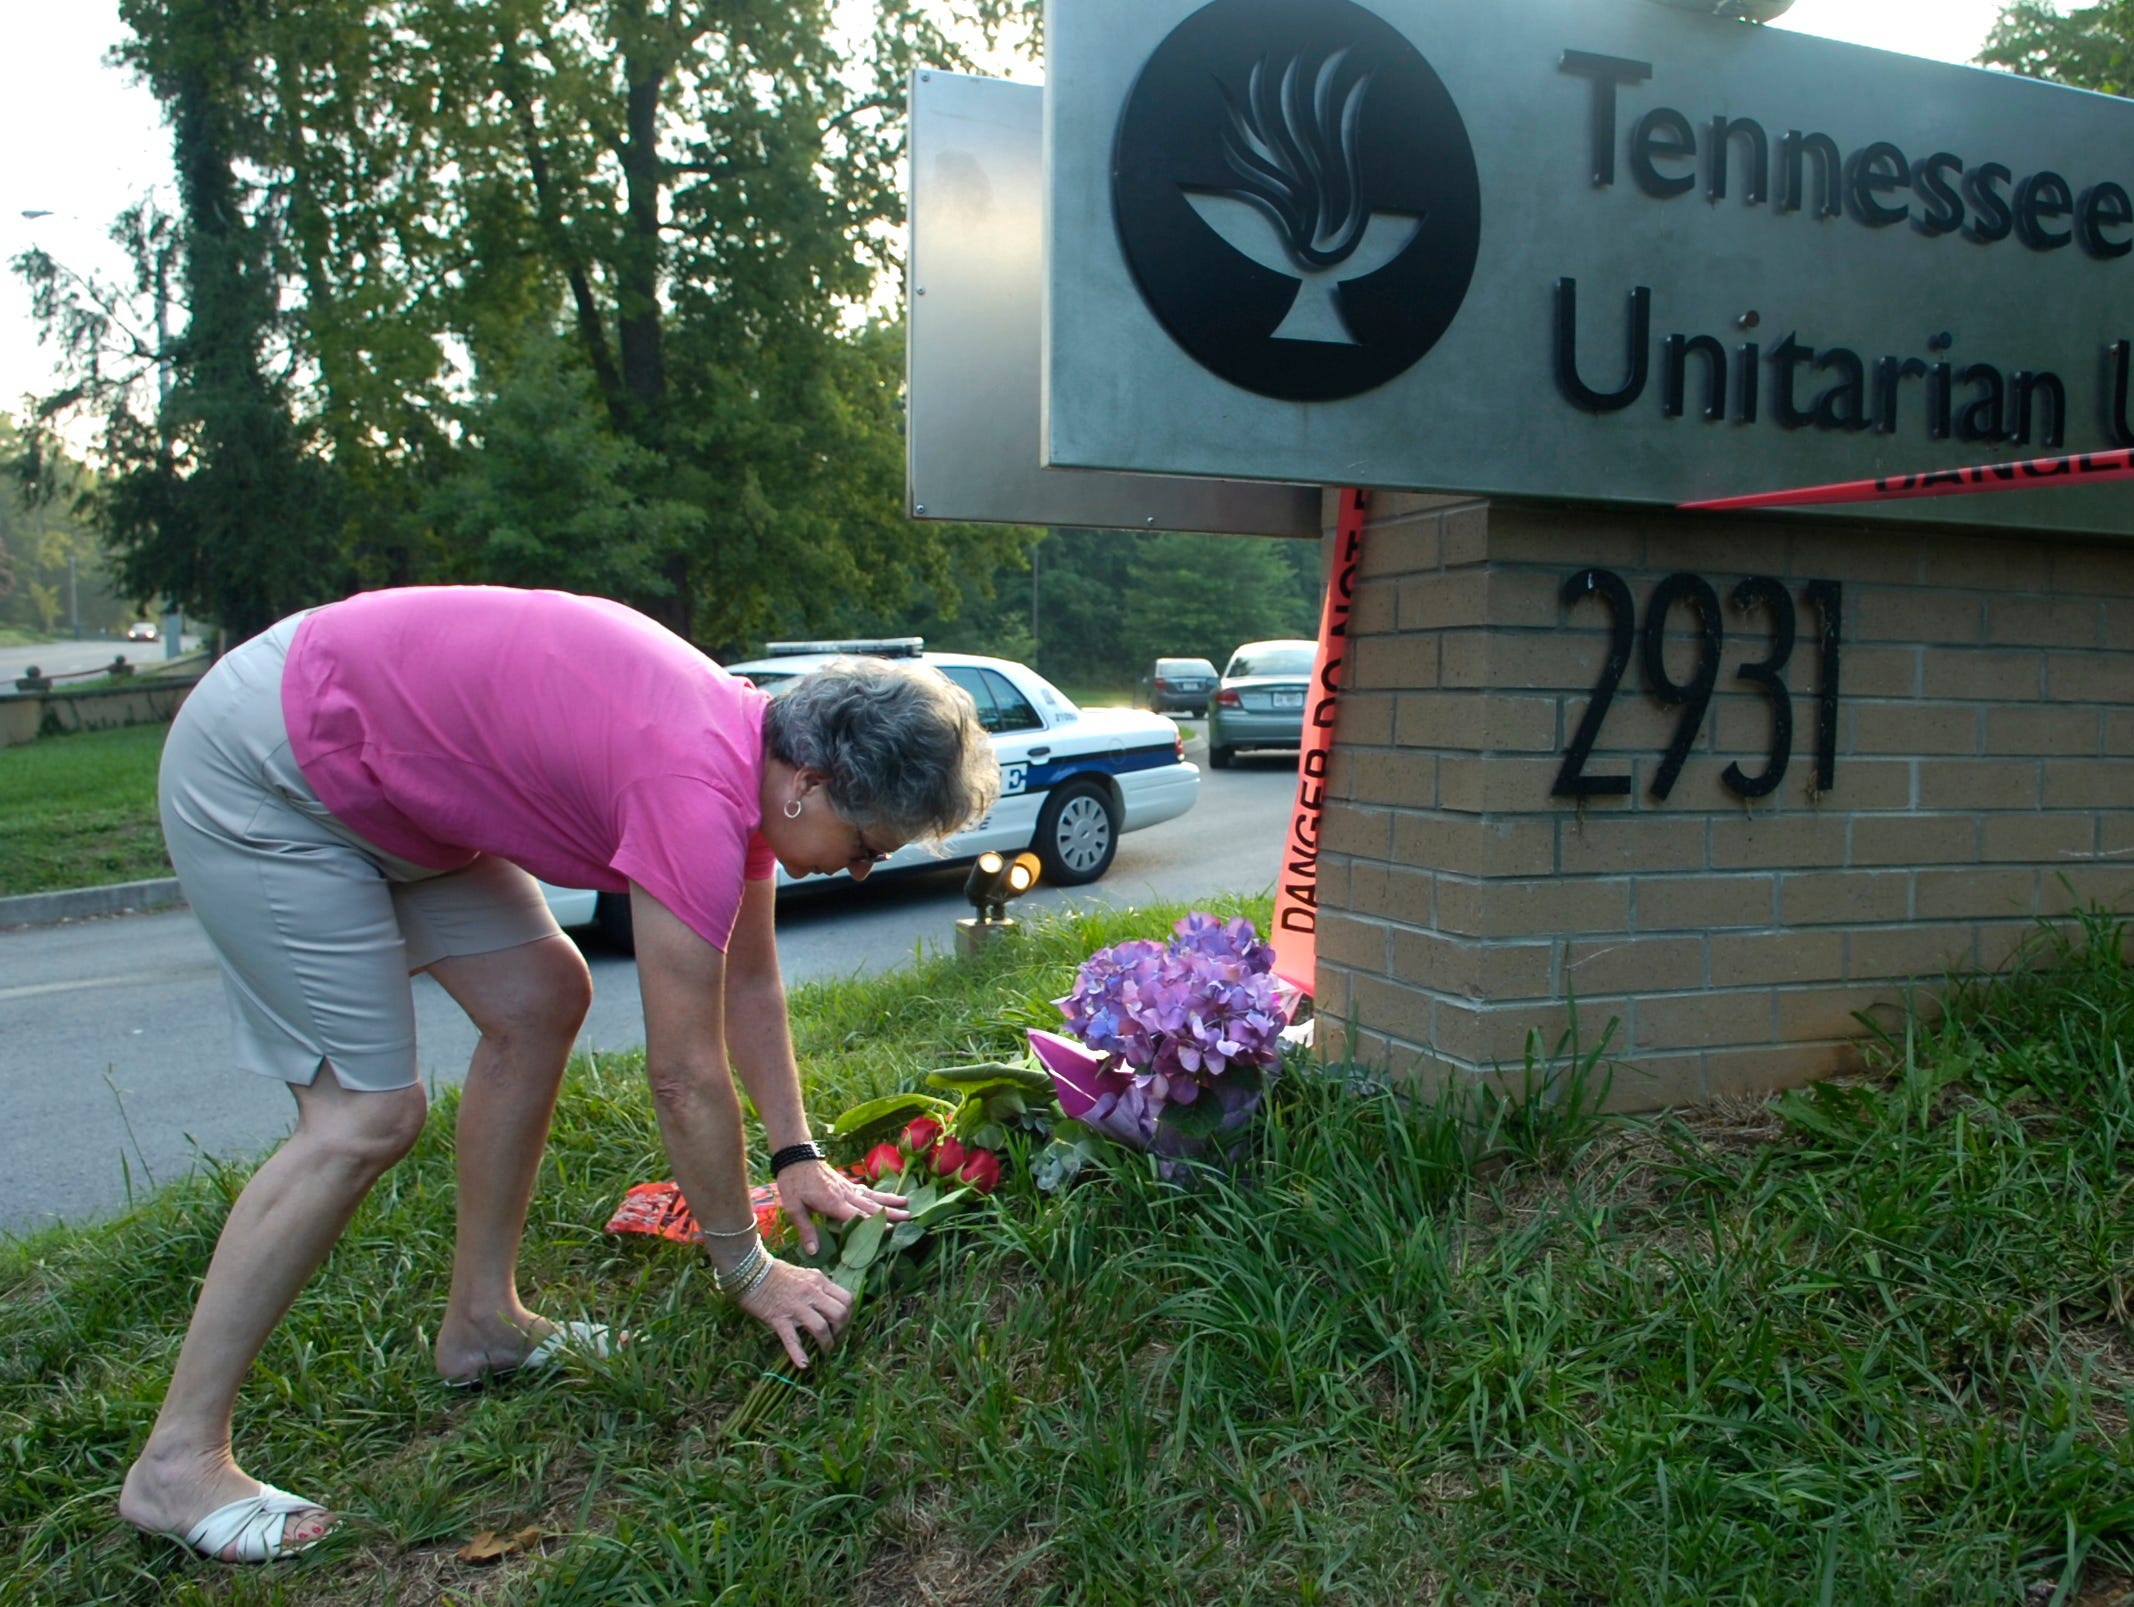 Anna Fraser of Knoxville lays flowers near the front driveway of the Tennessee Valley Unitarian Universalist Church on Kingston Pike where two people died and several were injured following a shooting Sunday morning during a children's play.